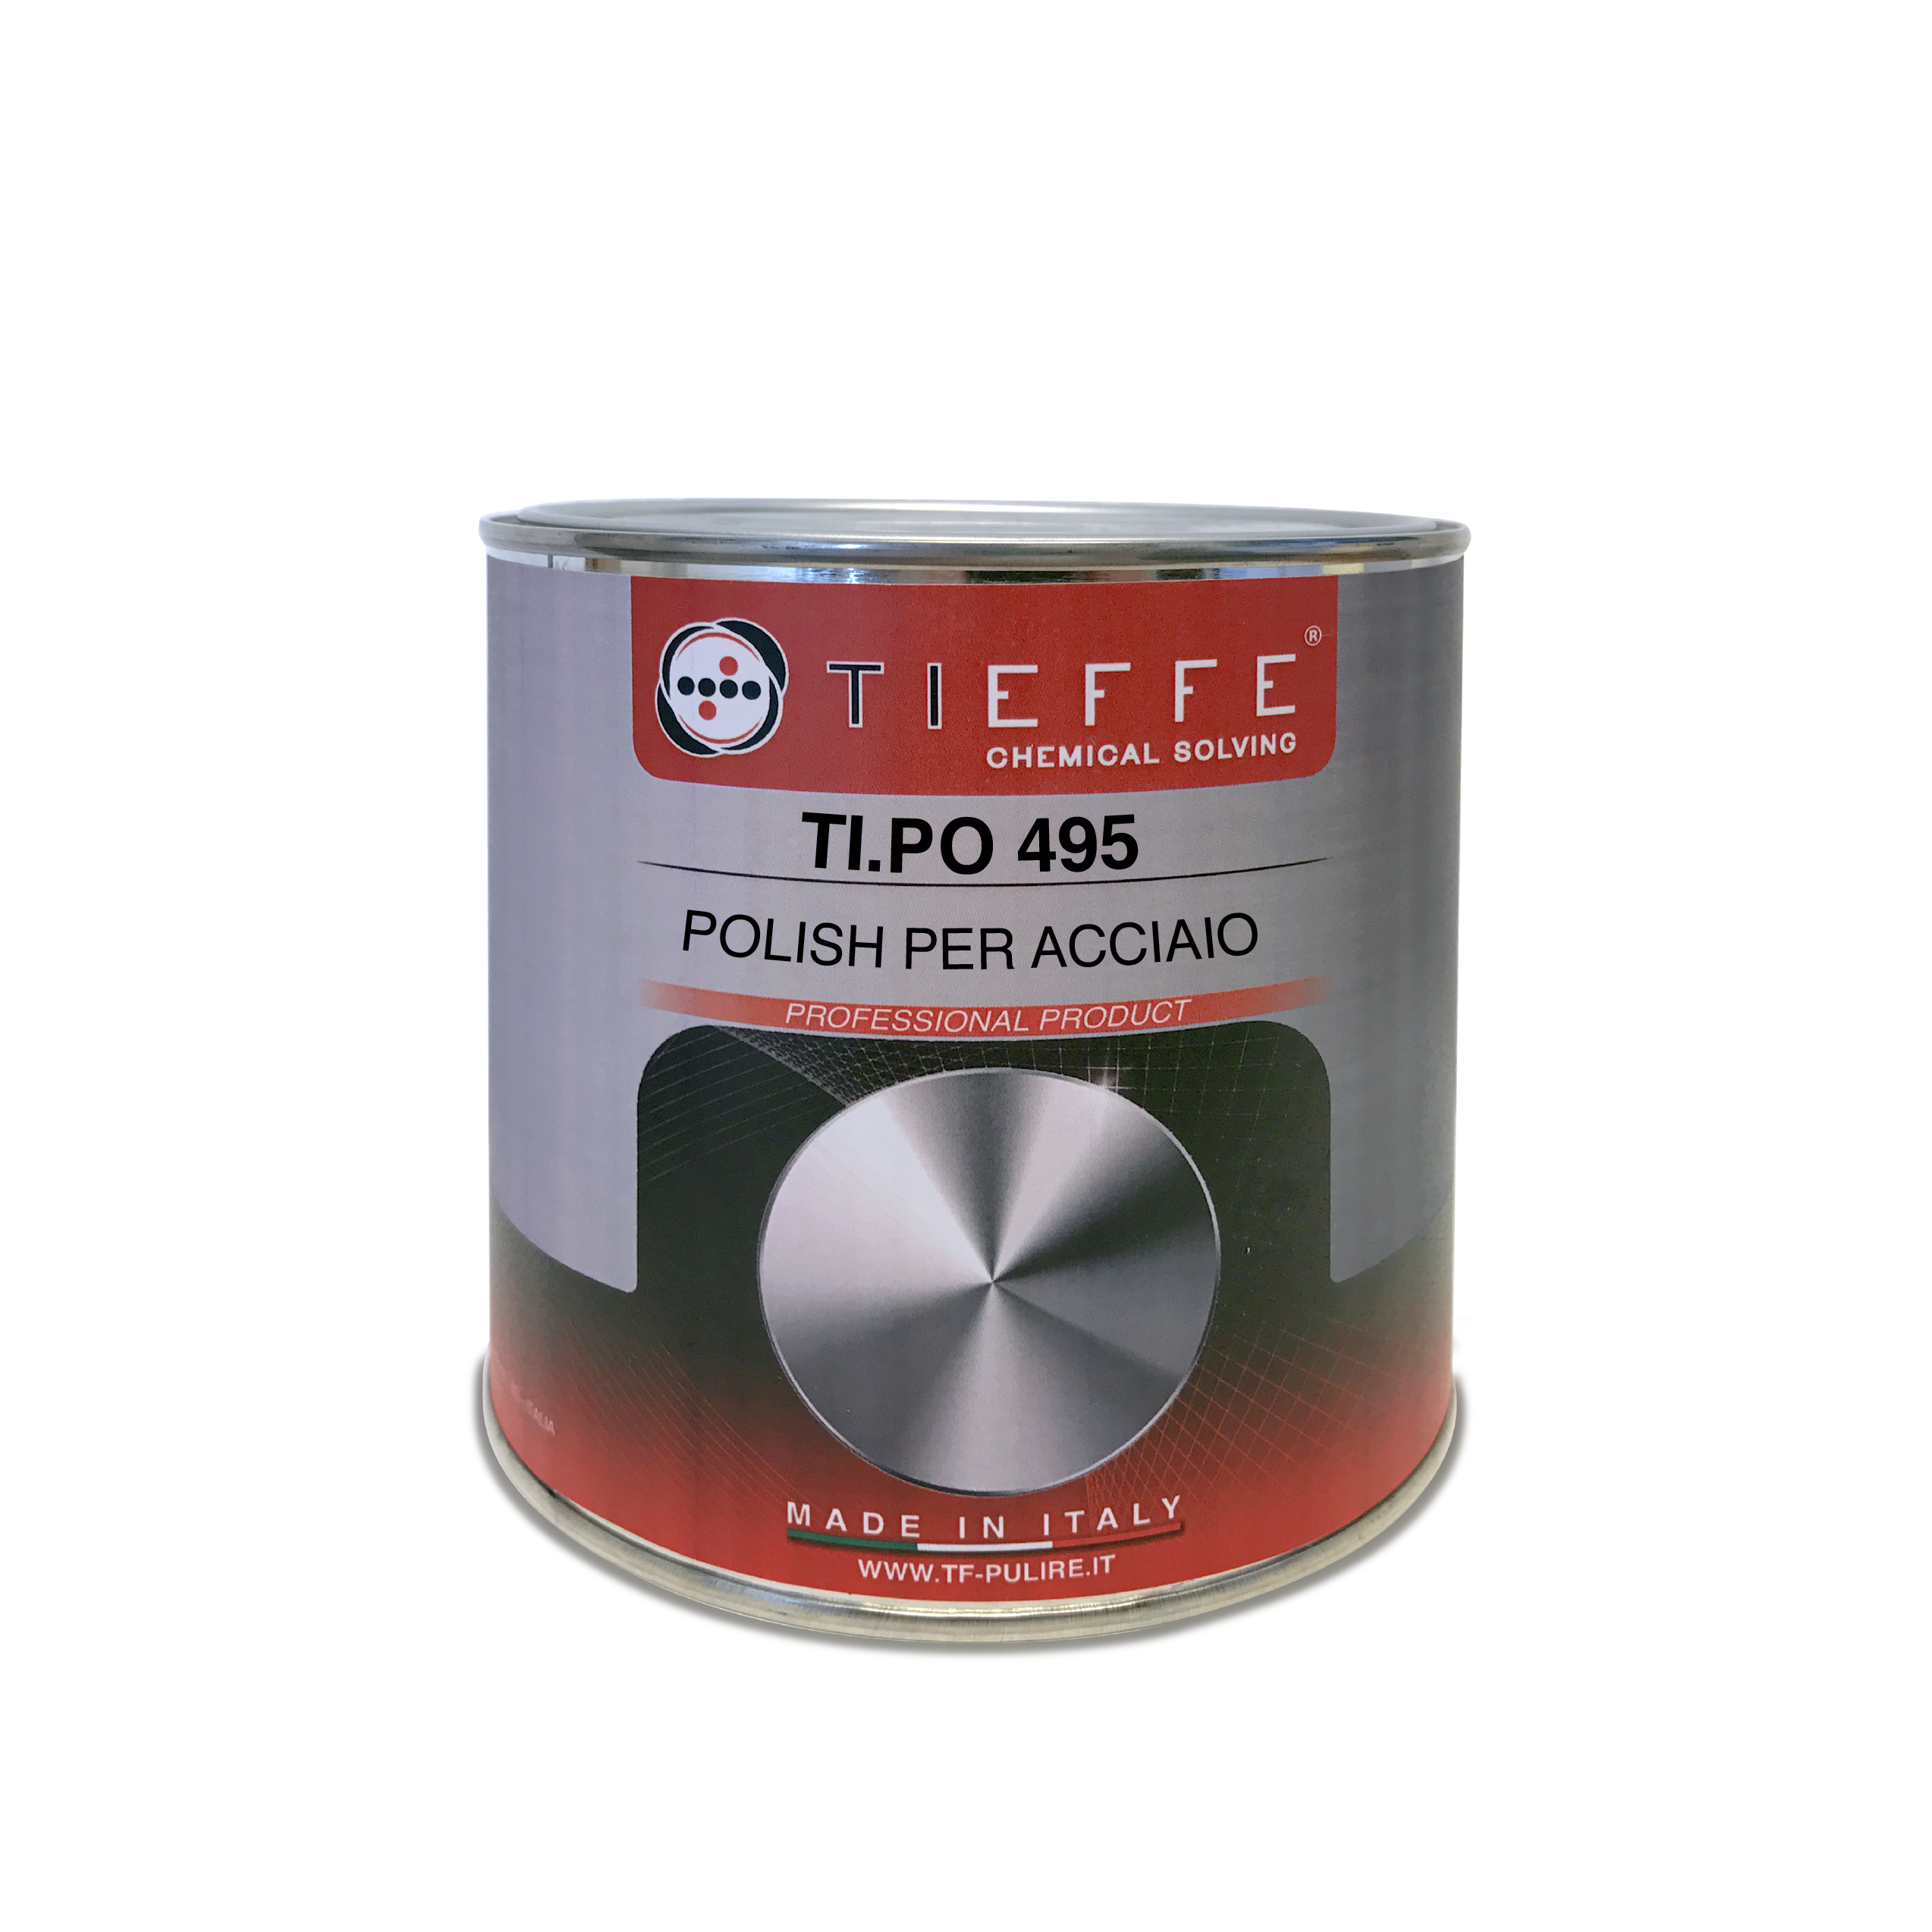 TI.PO 495 White polish for painted and unpainted metal surfaces